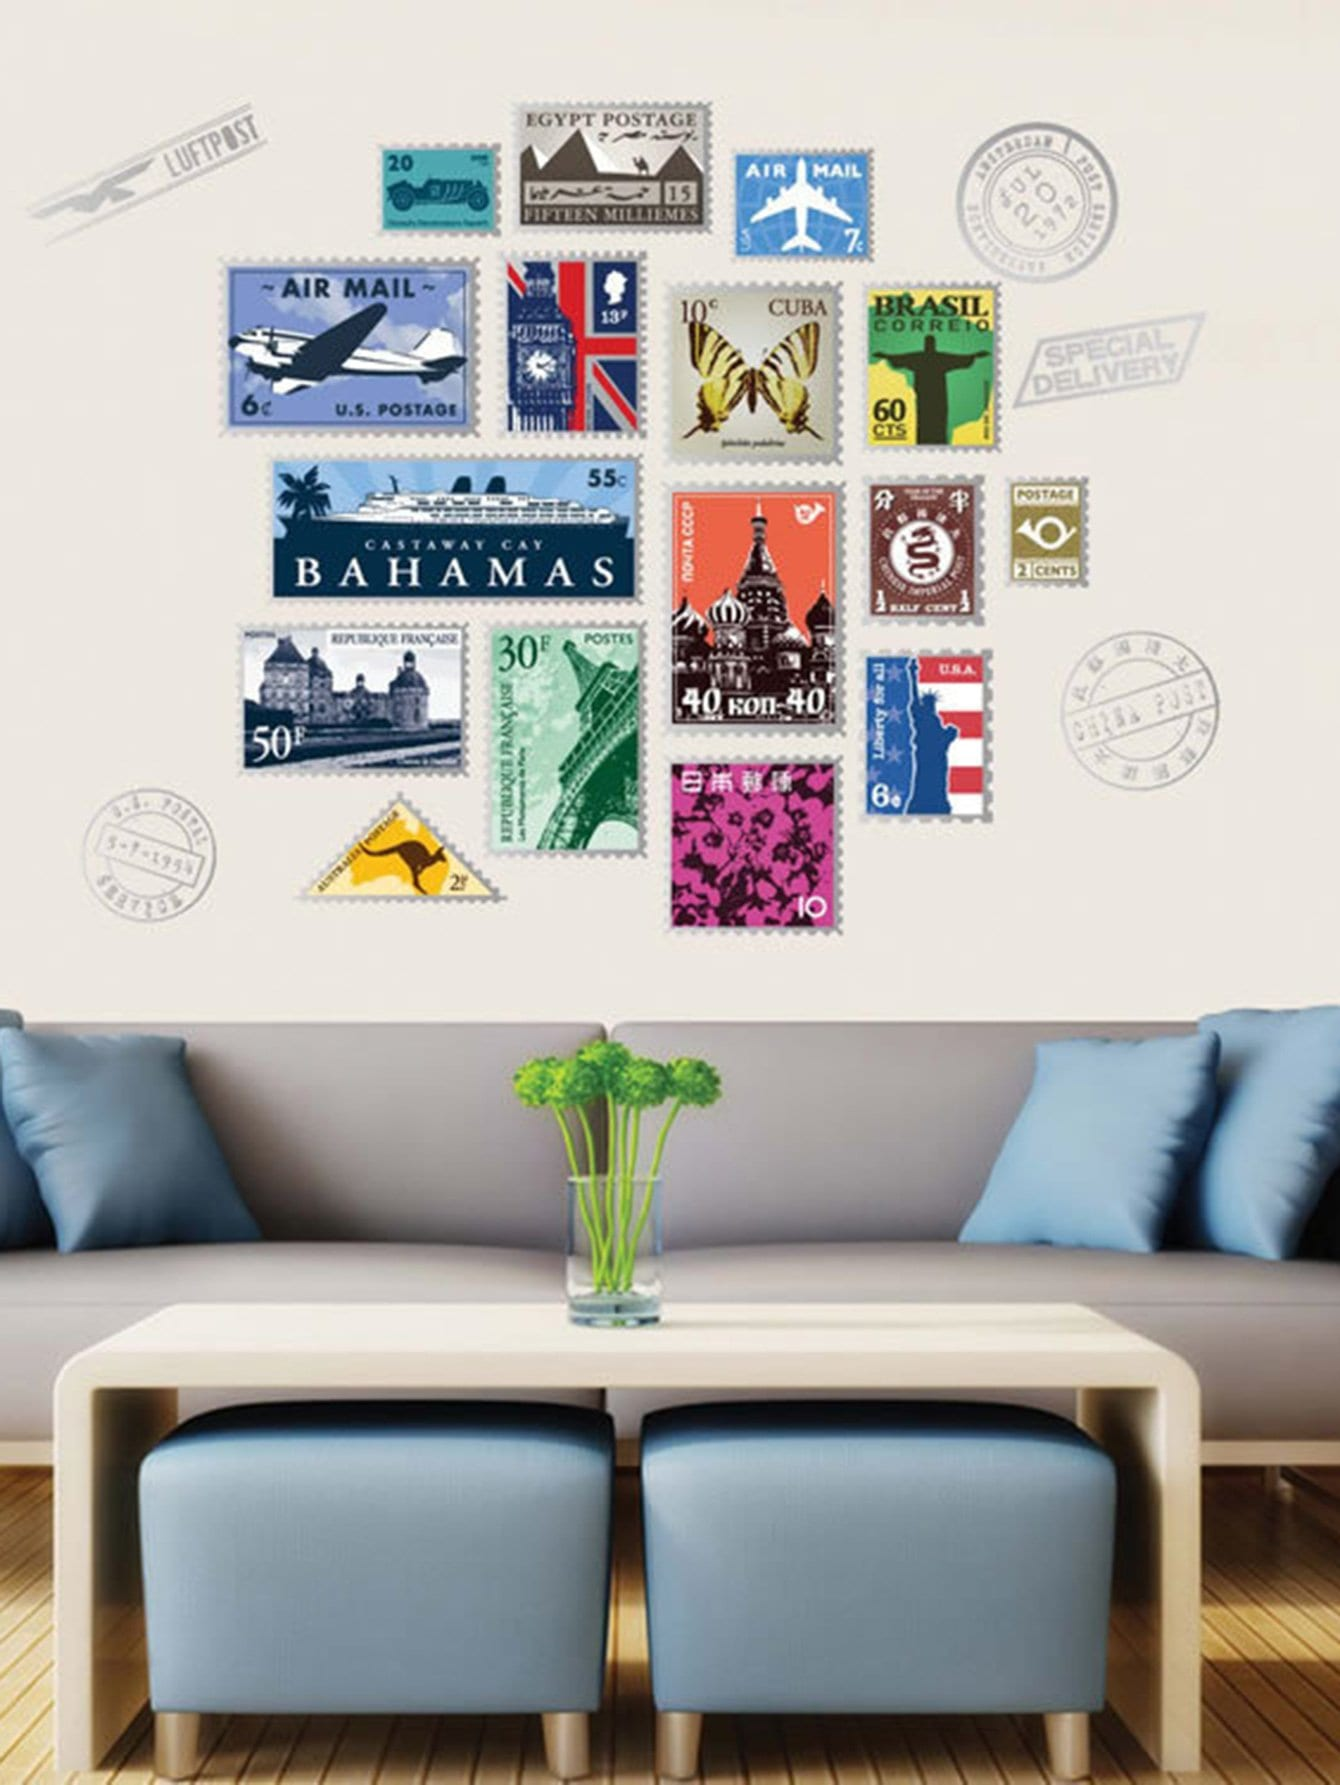 Stamp Wall Sticker scrapbook diy photo cards account rubber stamp clear stamp finished transparent chapter wall decoration 15 18